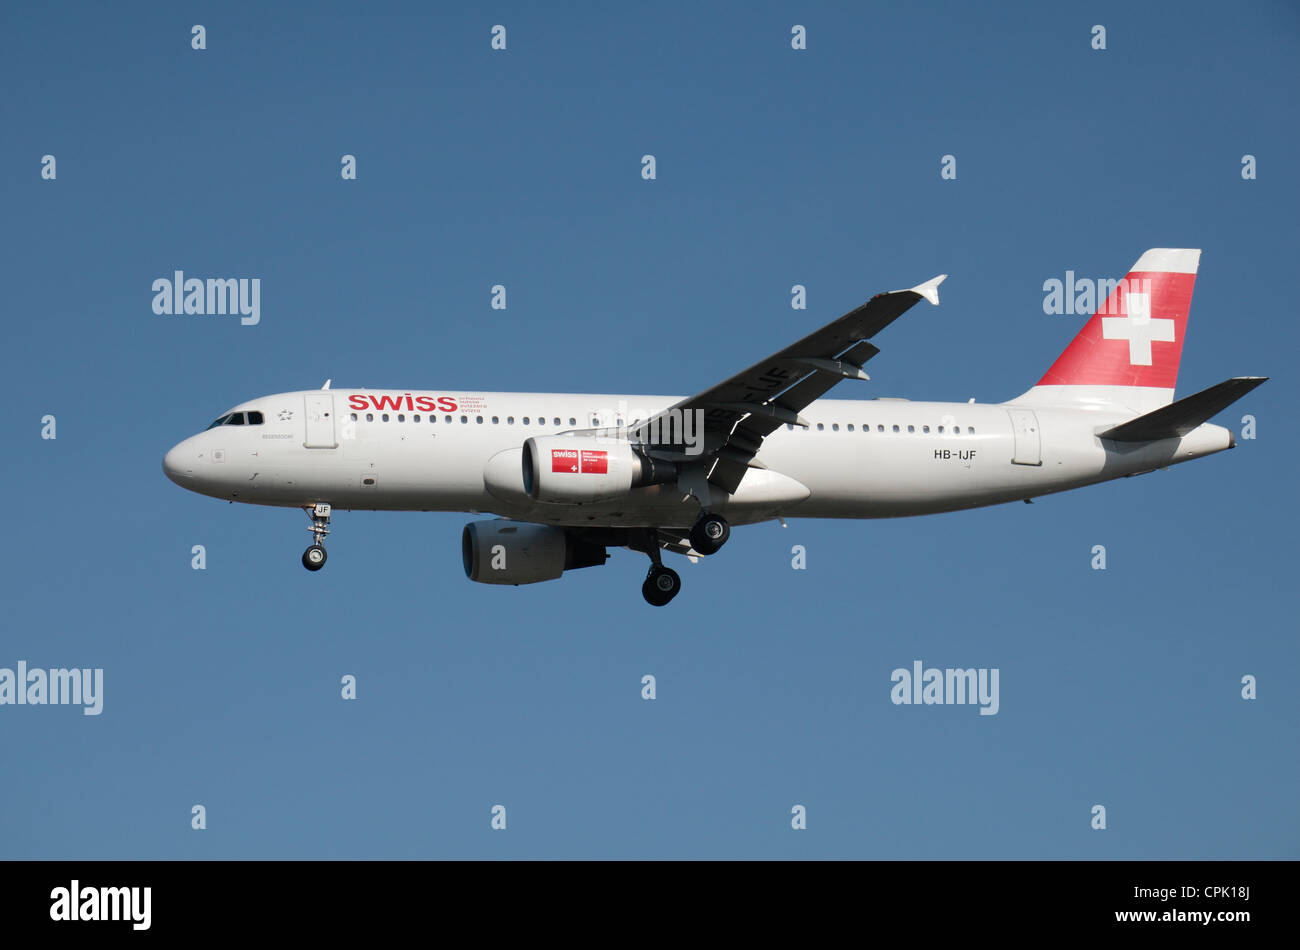 The Swiss International Air Lines Airbus A320-214 (HB-IJF) about to land at Heathrow Airport, London, UK. Feb 2012 Stock Photo